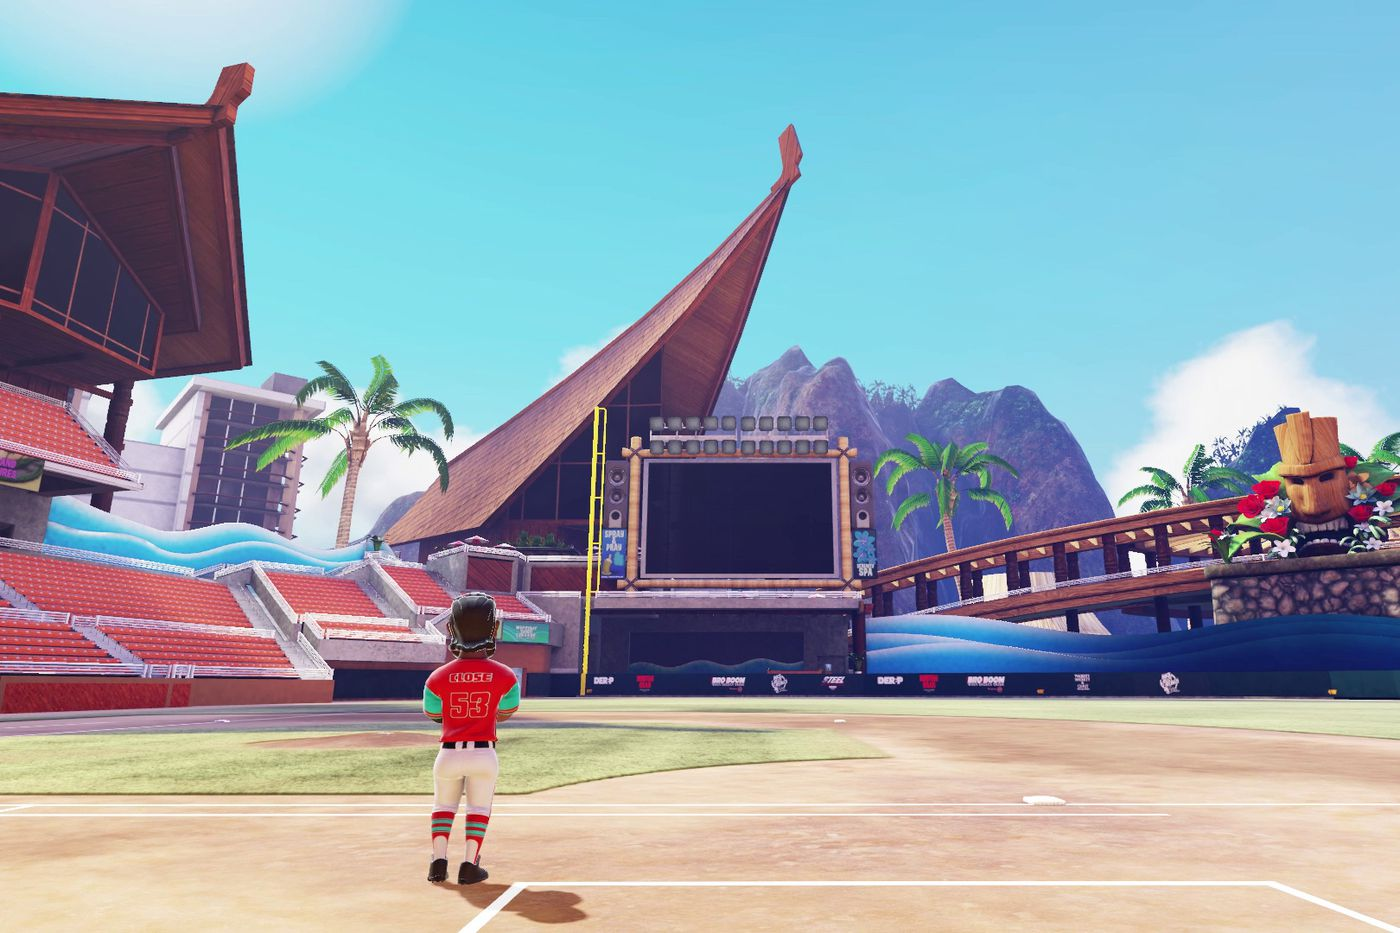 super mega baseball 2 coming in 2017 adds online play and more